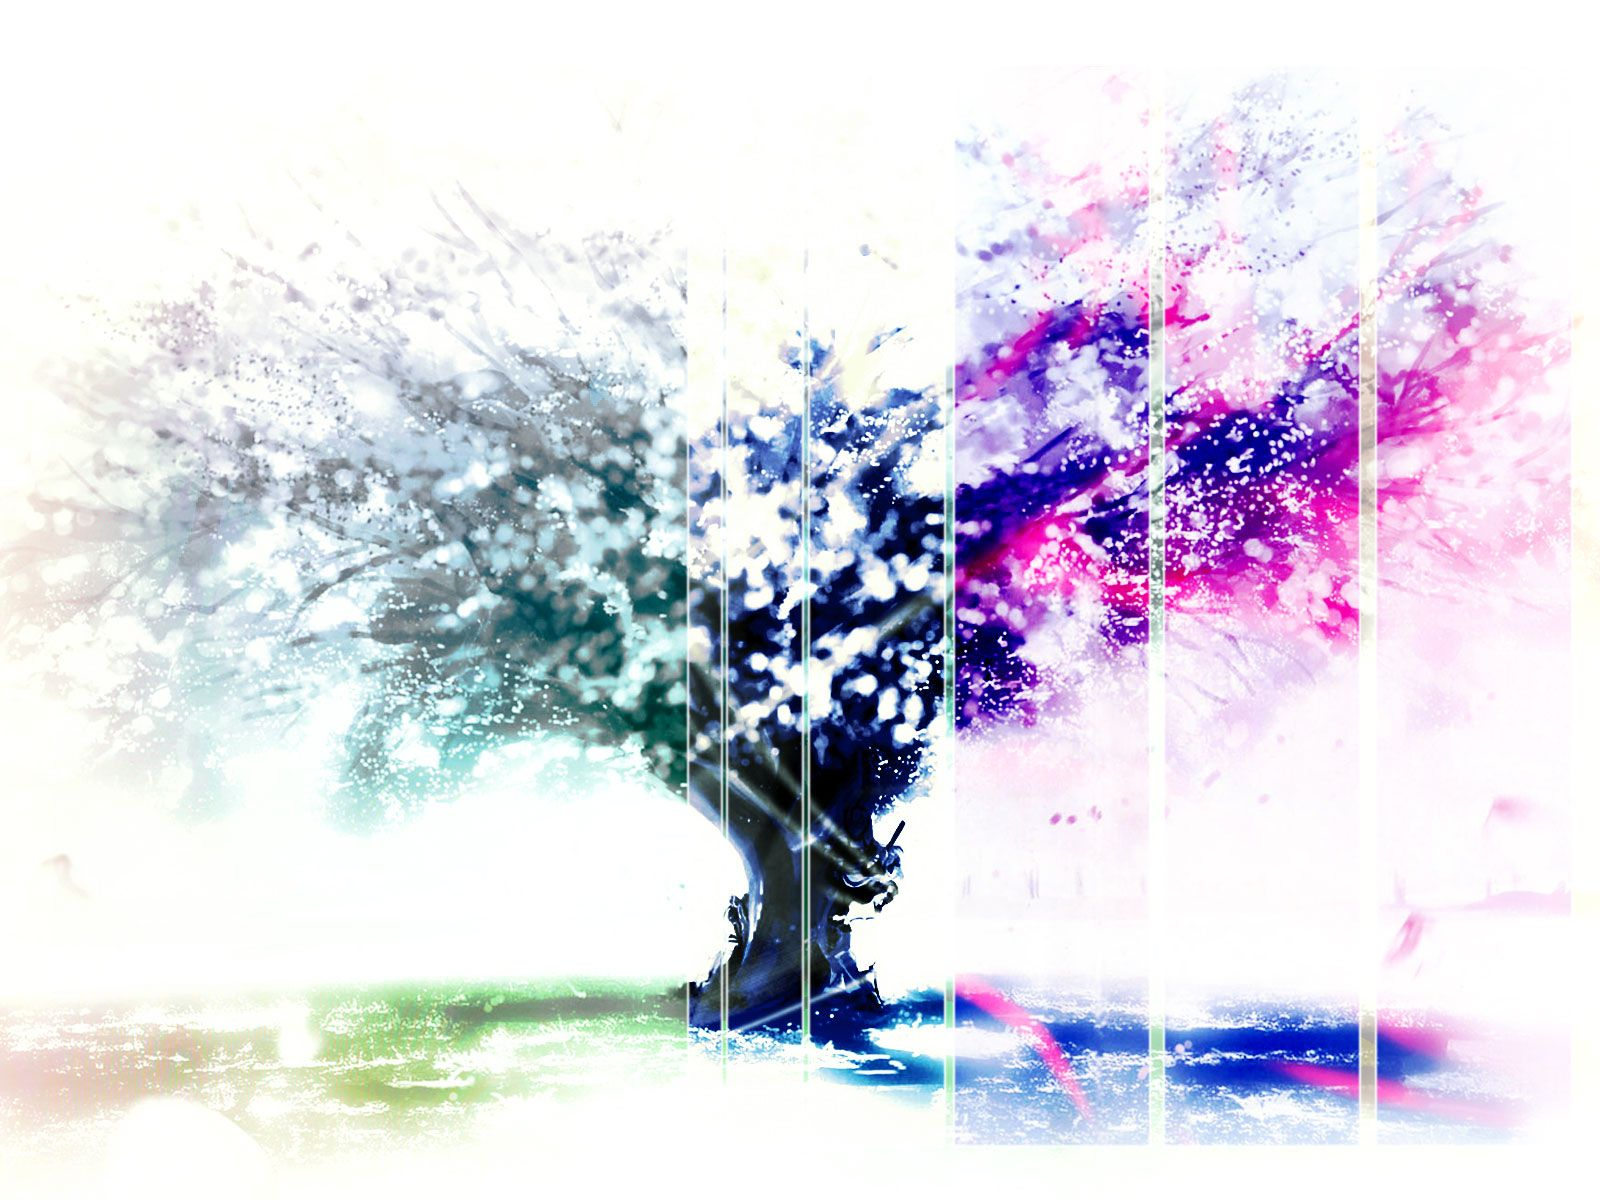 Tree Abstract Iphone Wallpapers Top Free Tree Abstract